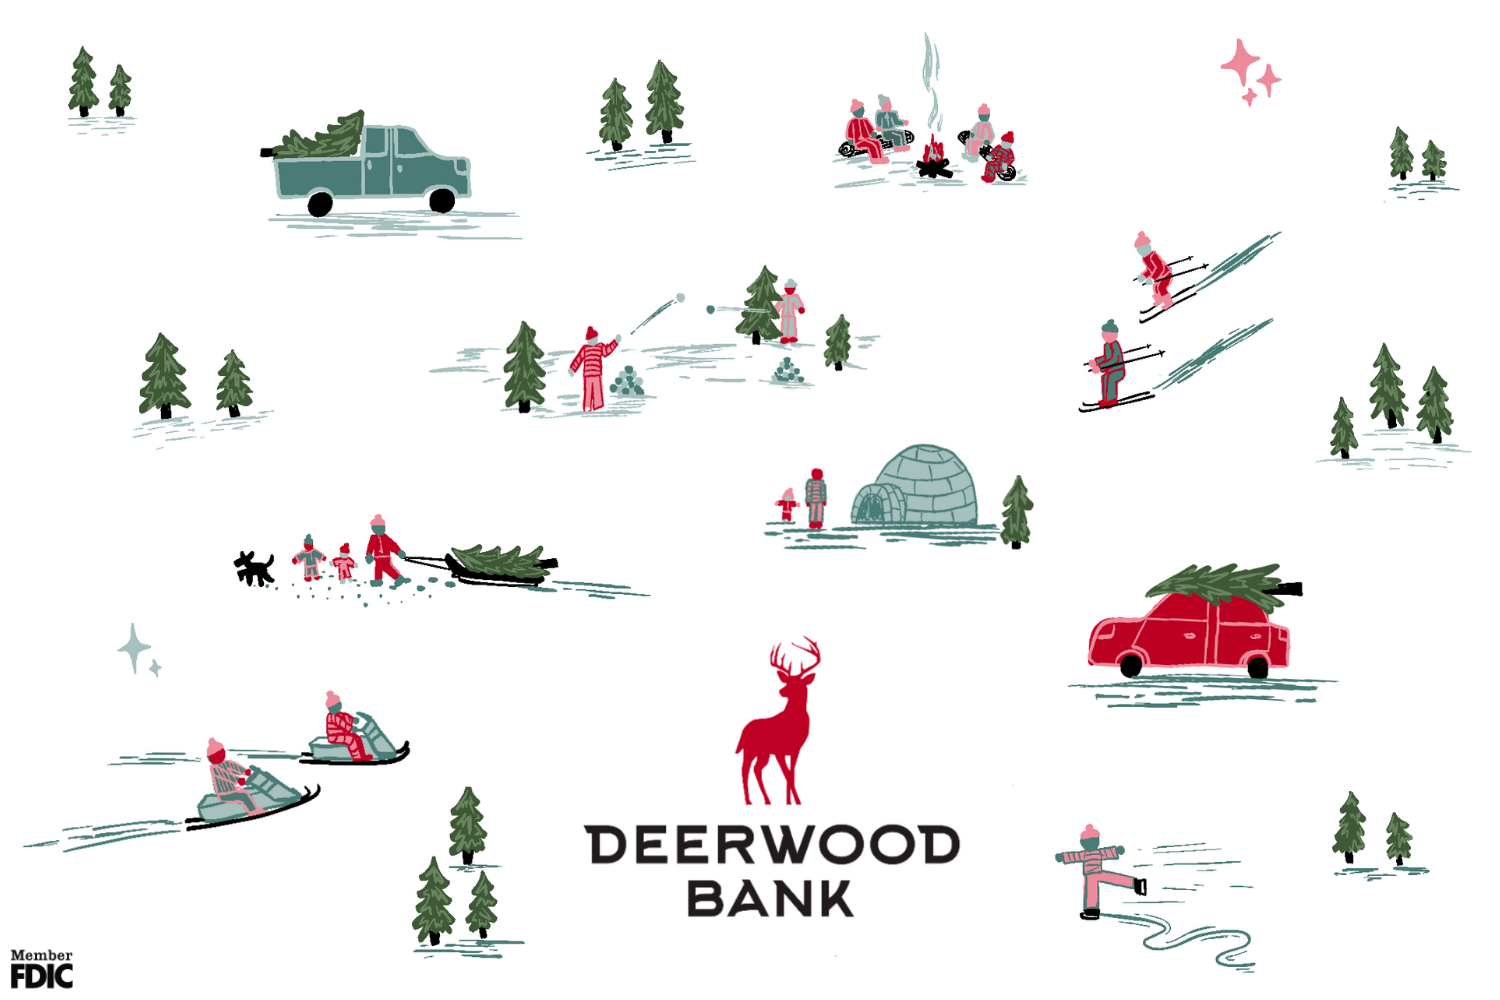 Happy Holidays from Deerwood Bank